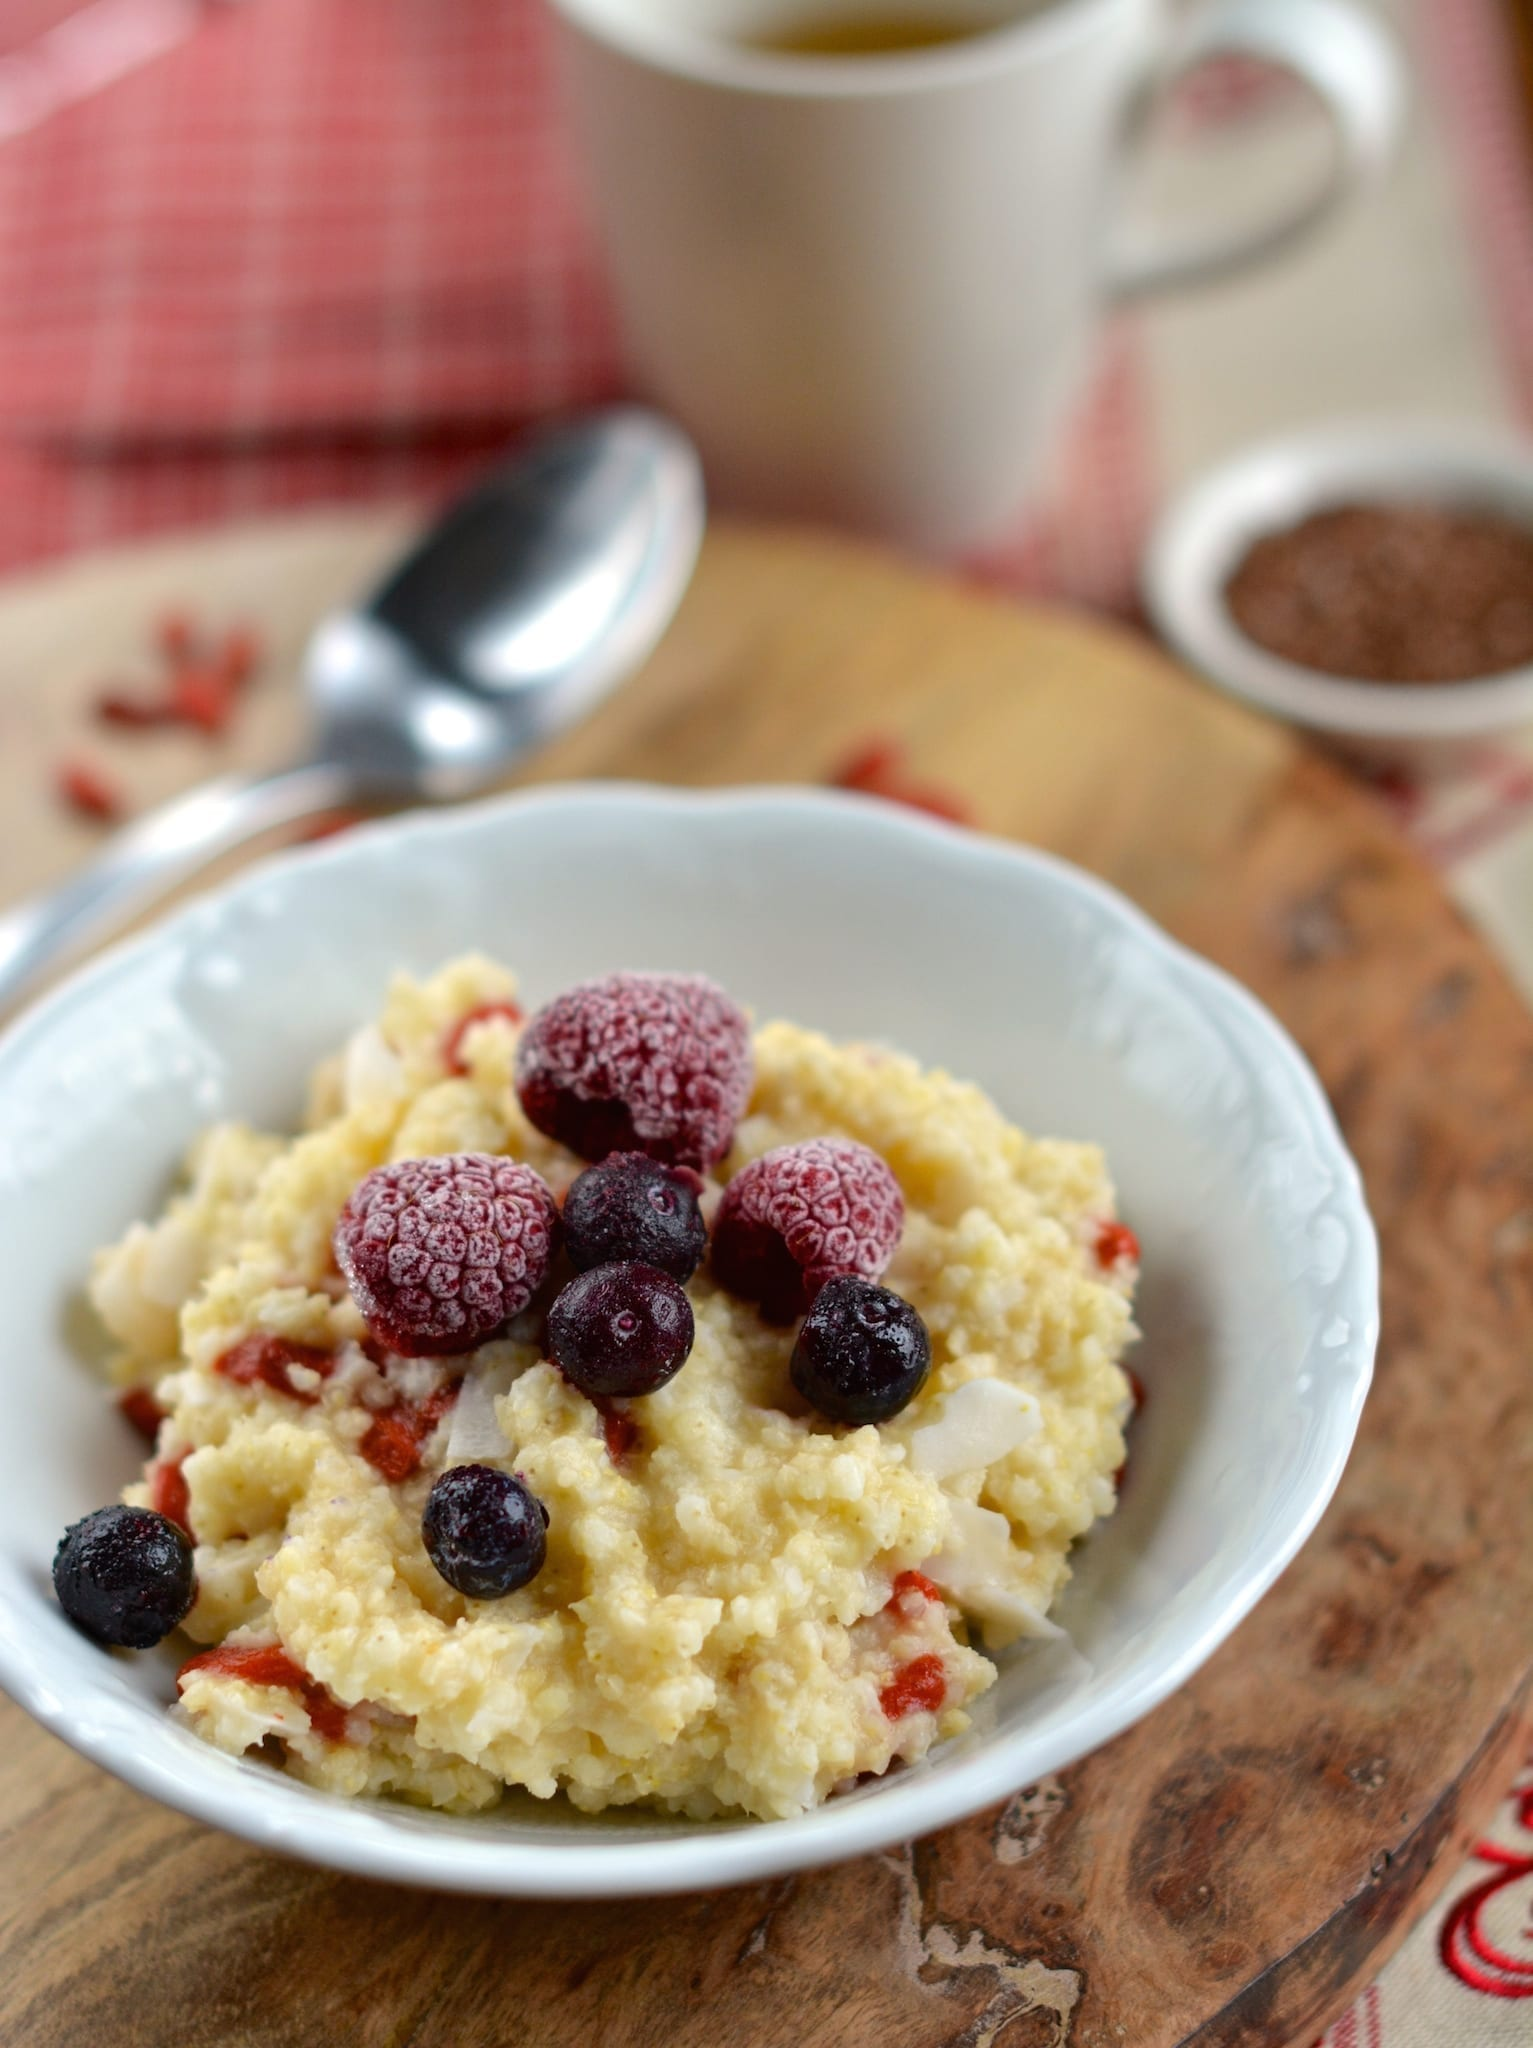 Millet with Blueberries and Raspberries